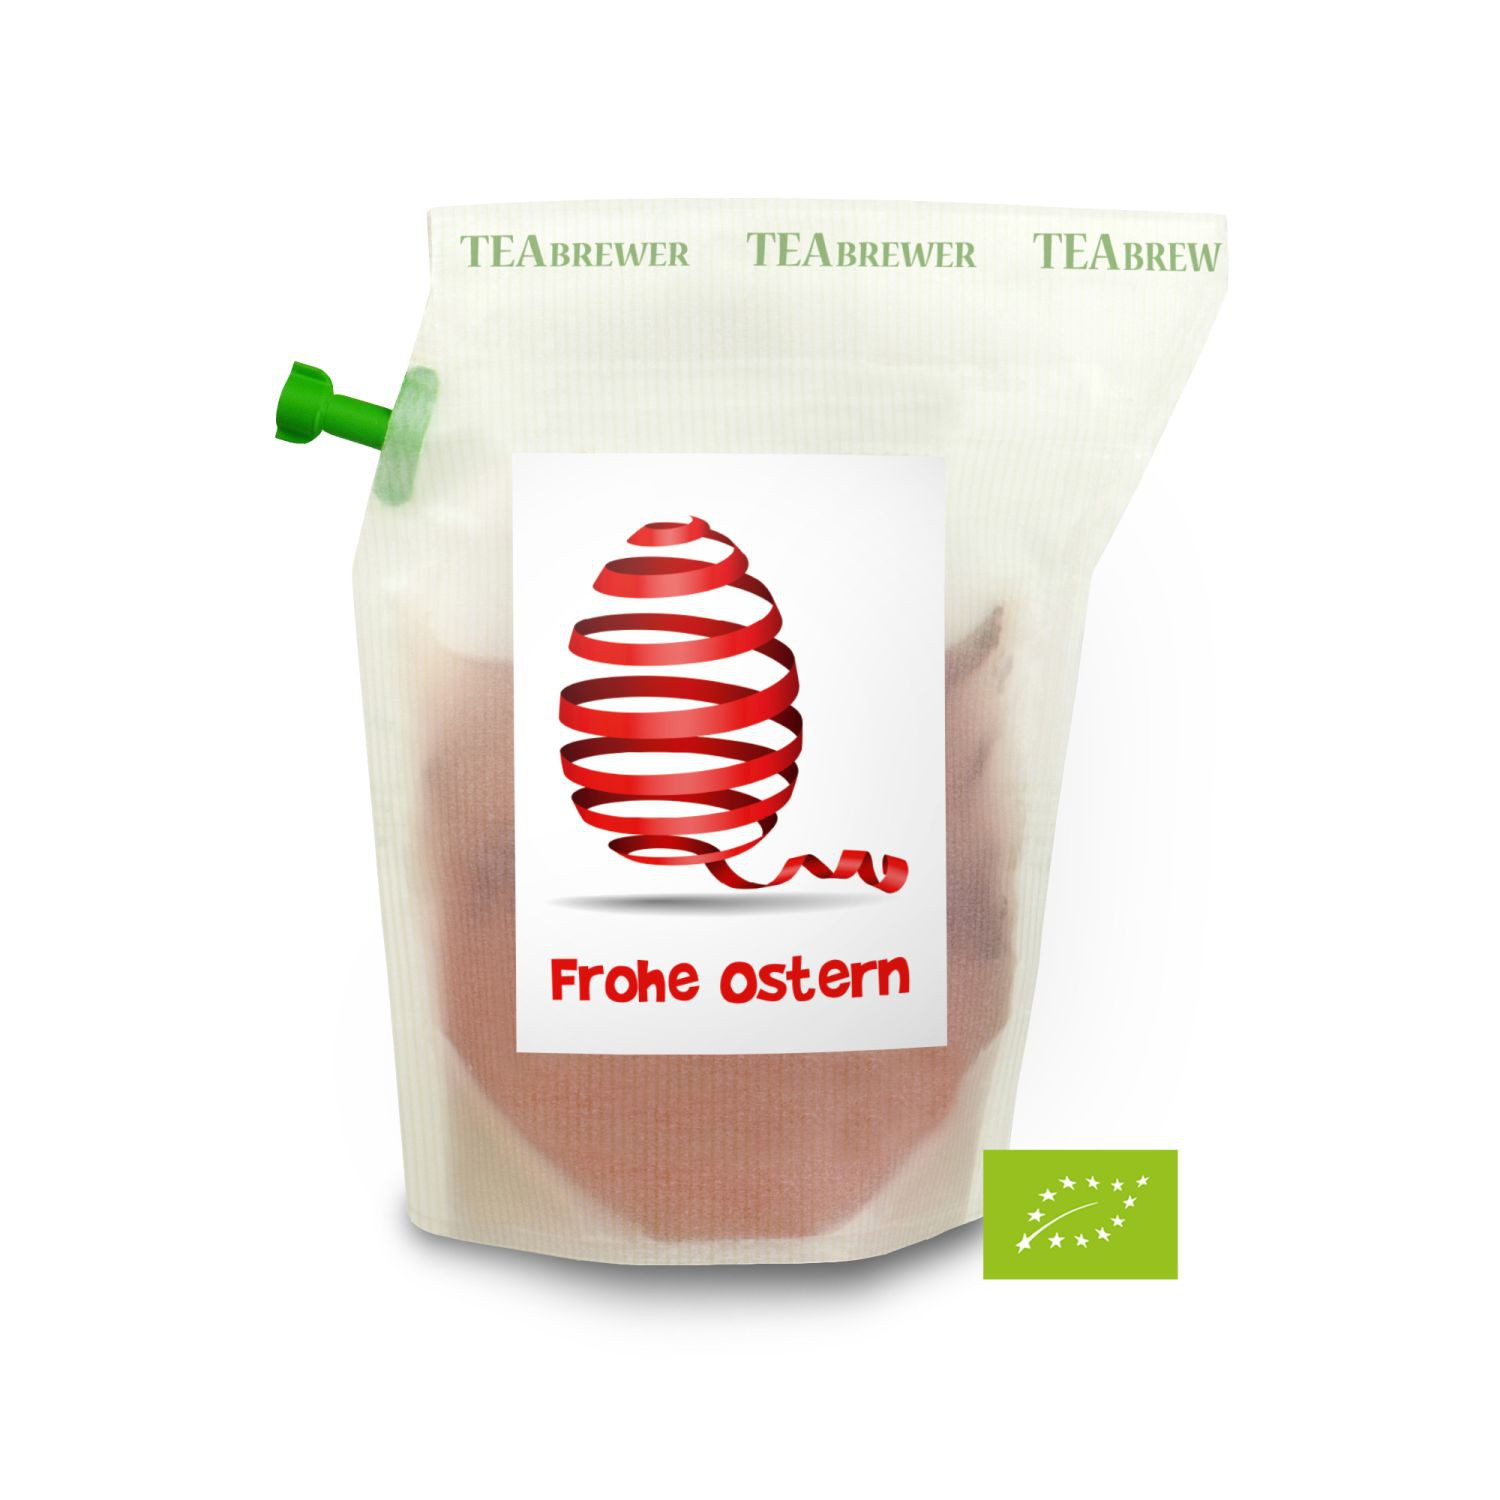 Bio Oster Tee - Frohe Ostern Eiband